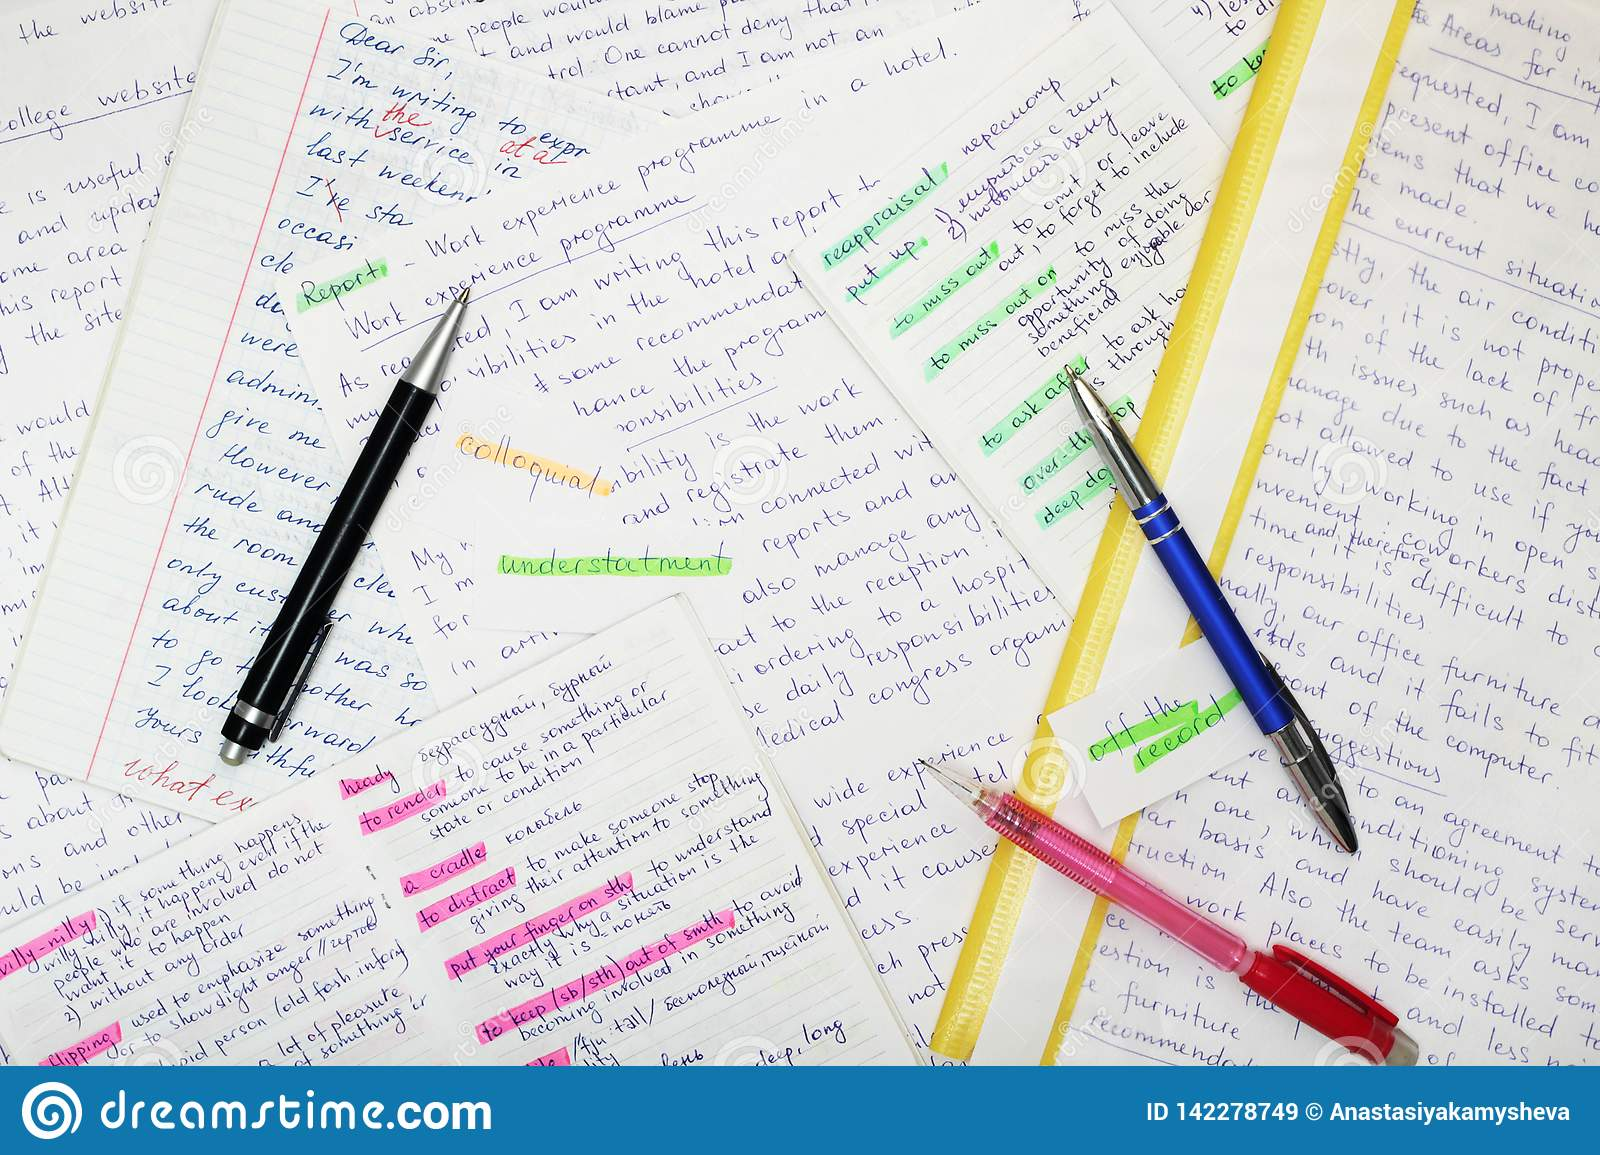 essays in english language as a part of exam preparation stock image  different essays forming background as a concept of english language exam  preparation